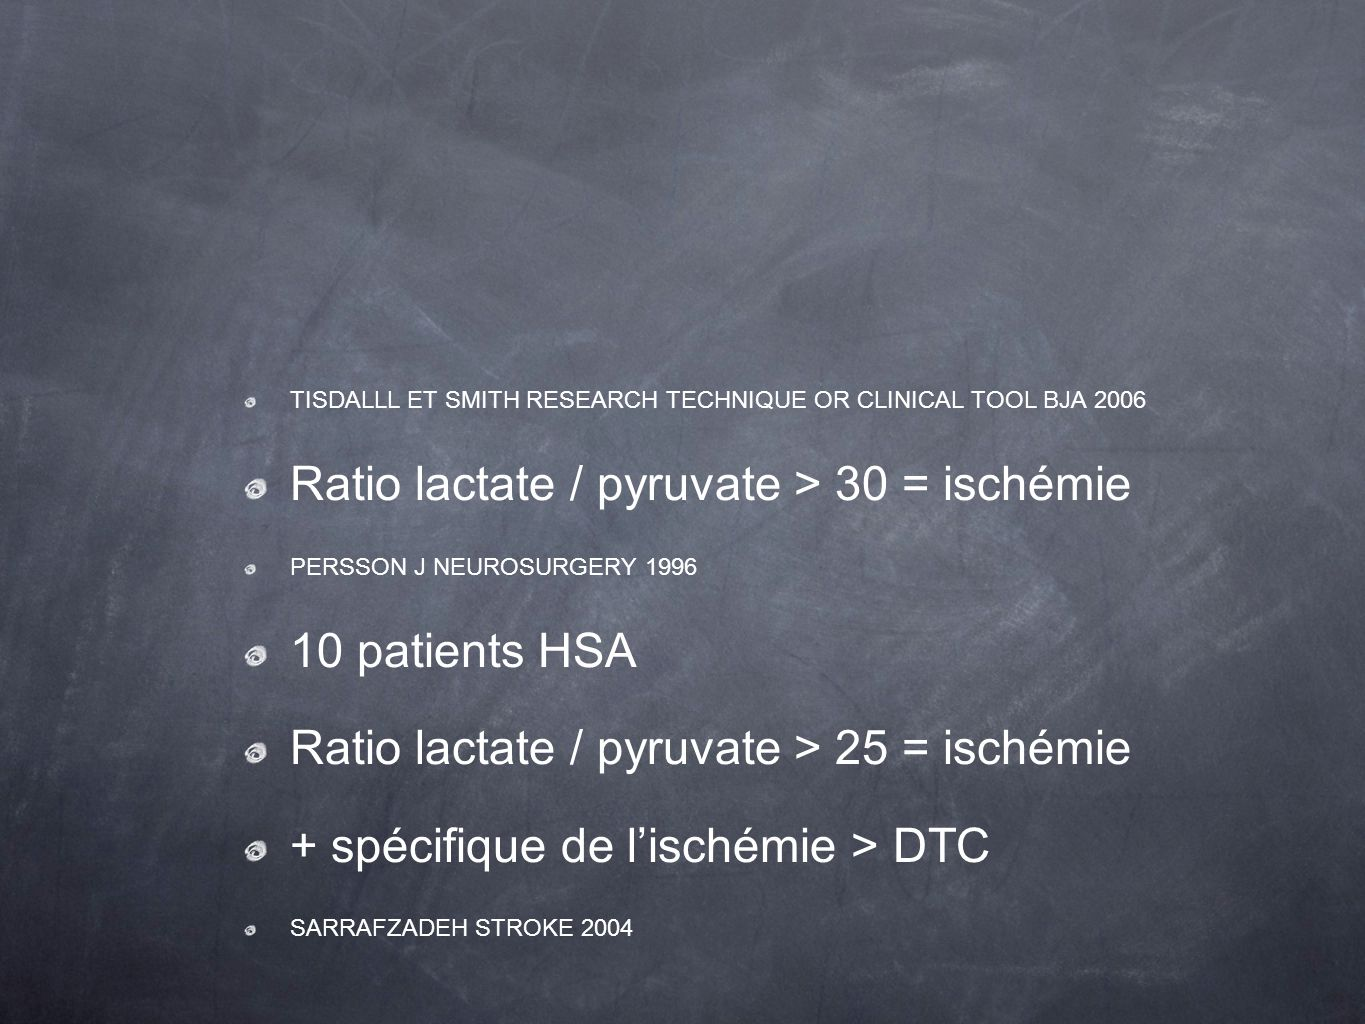 TISDALLL ET SMITH RESEARCH TECHNIQUE OR CLINICAL TOOL BJA 2006 Ratio lactate / pyruvate > 30 = ischémie PERSSON J NEUROSURGERY 1996 10 patients HSA Ra